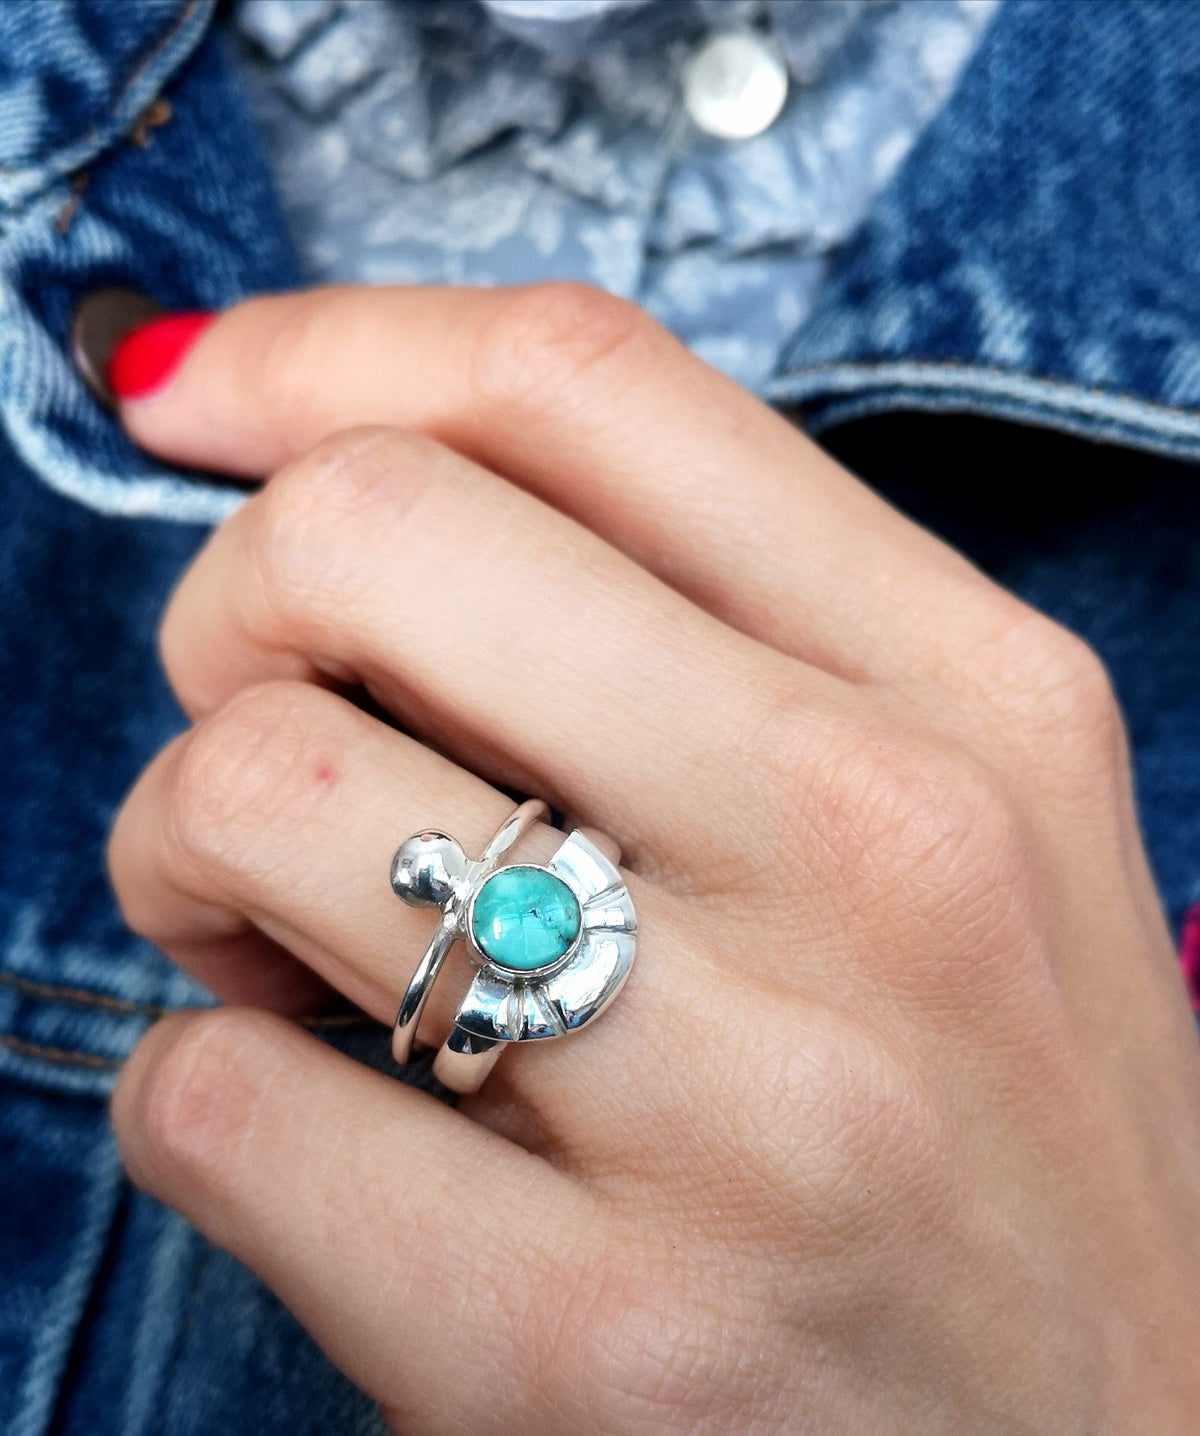 Image of Bague turquoise du tibet - taille 55 - ref. 7163